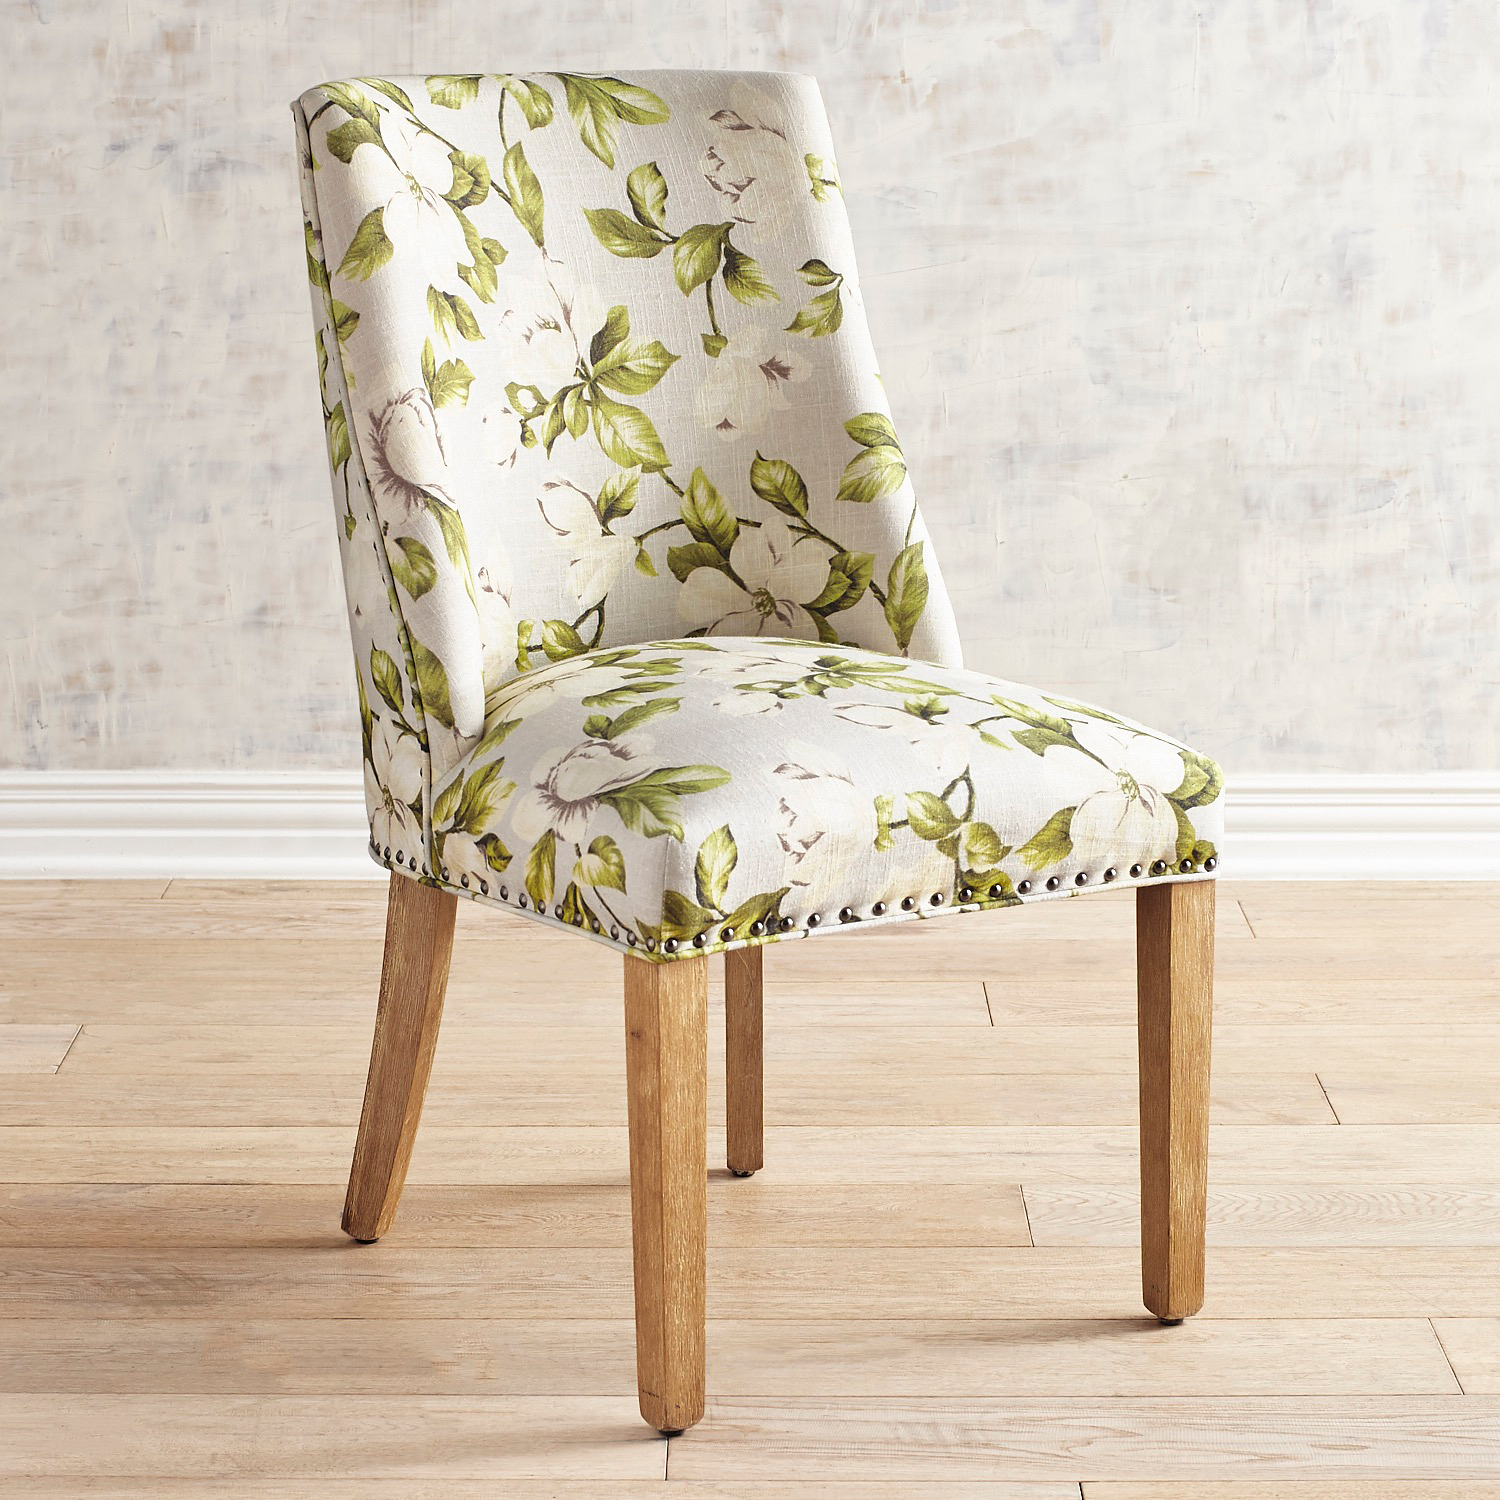 Corinne Magnolia Dining Chair with Natural Stonewash Wood